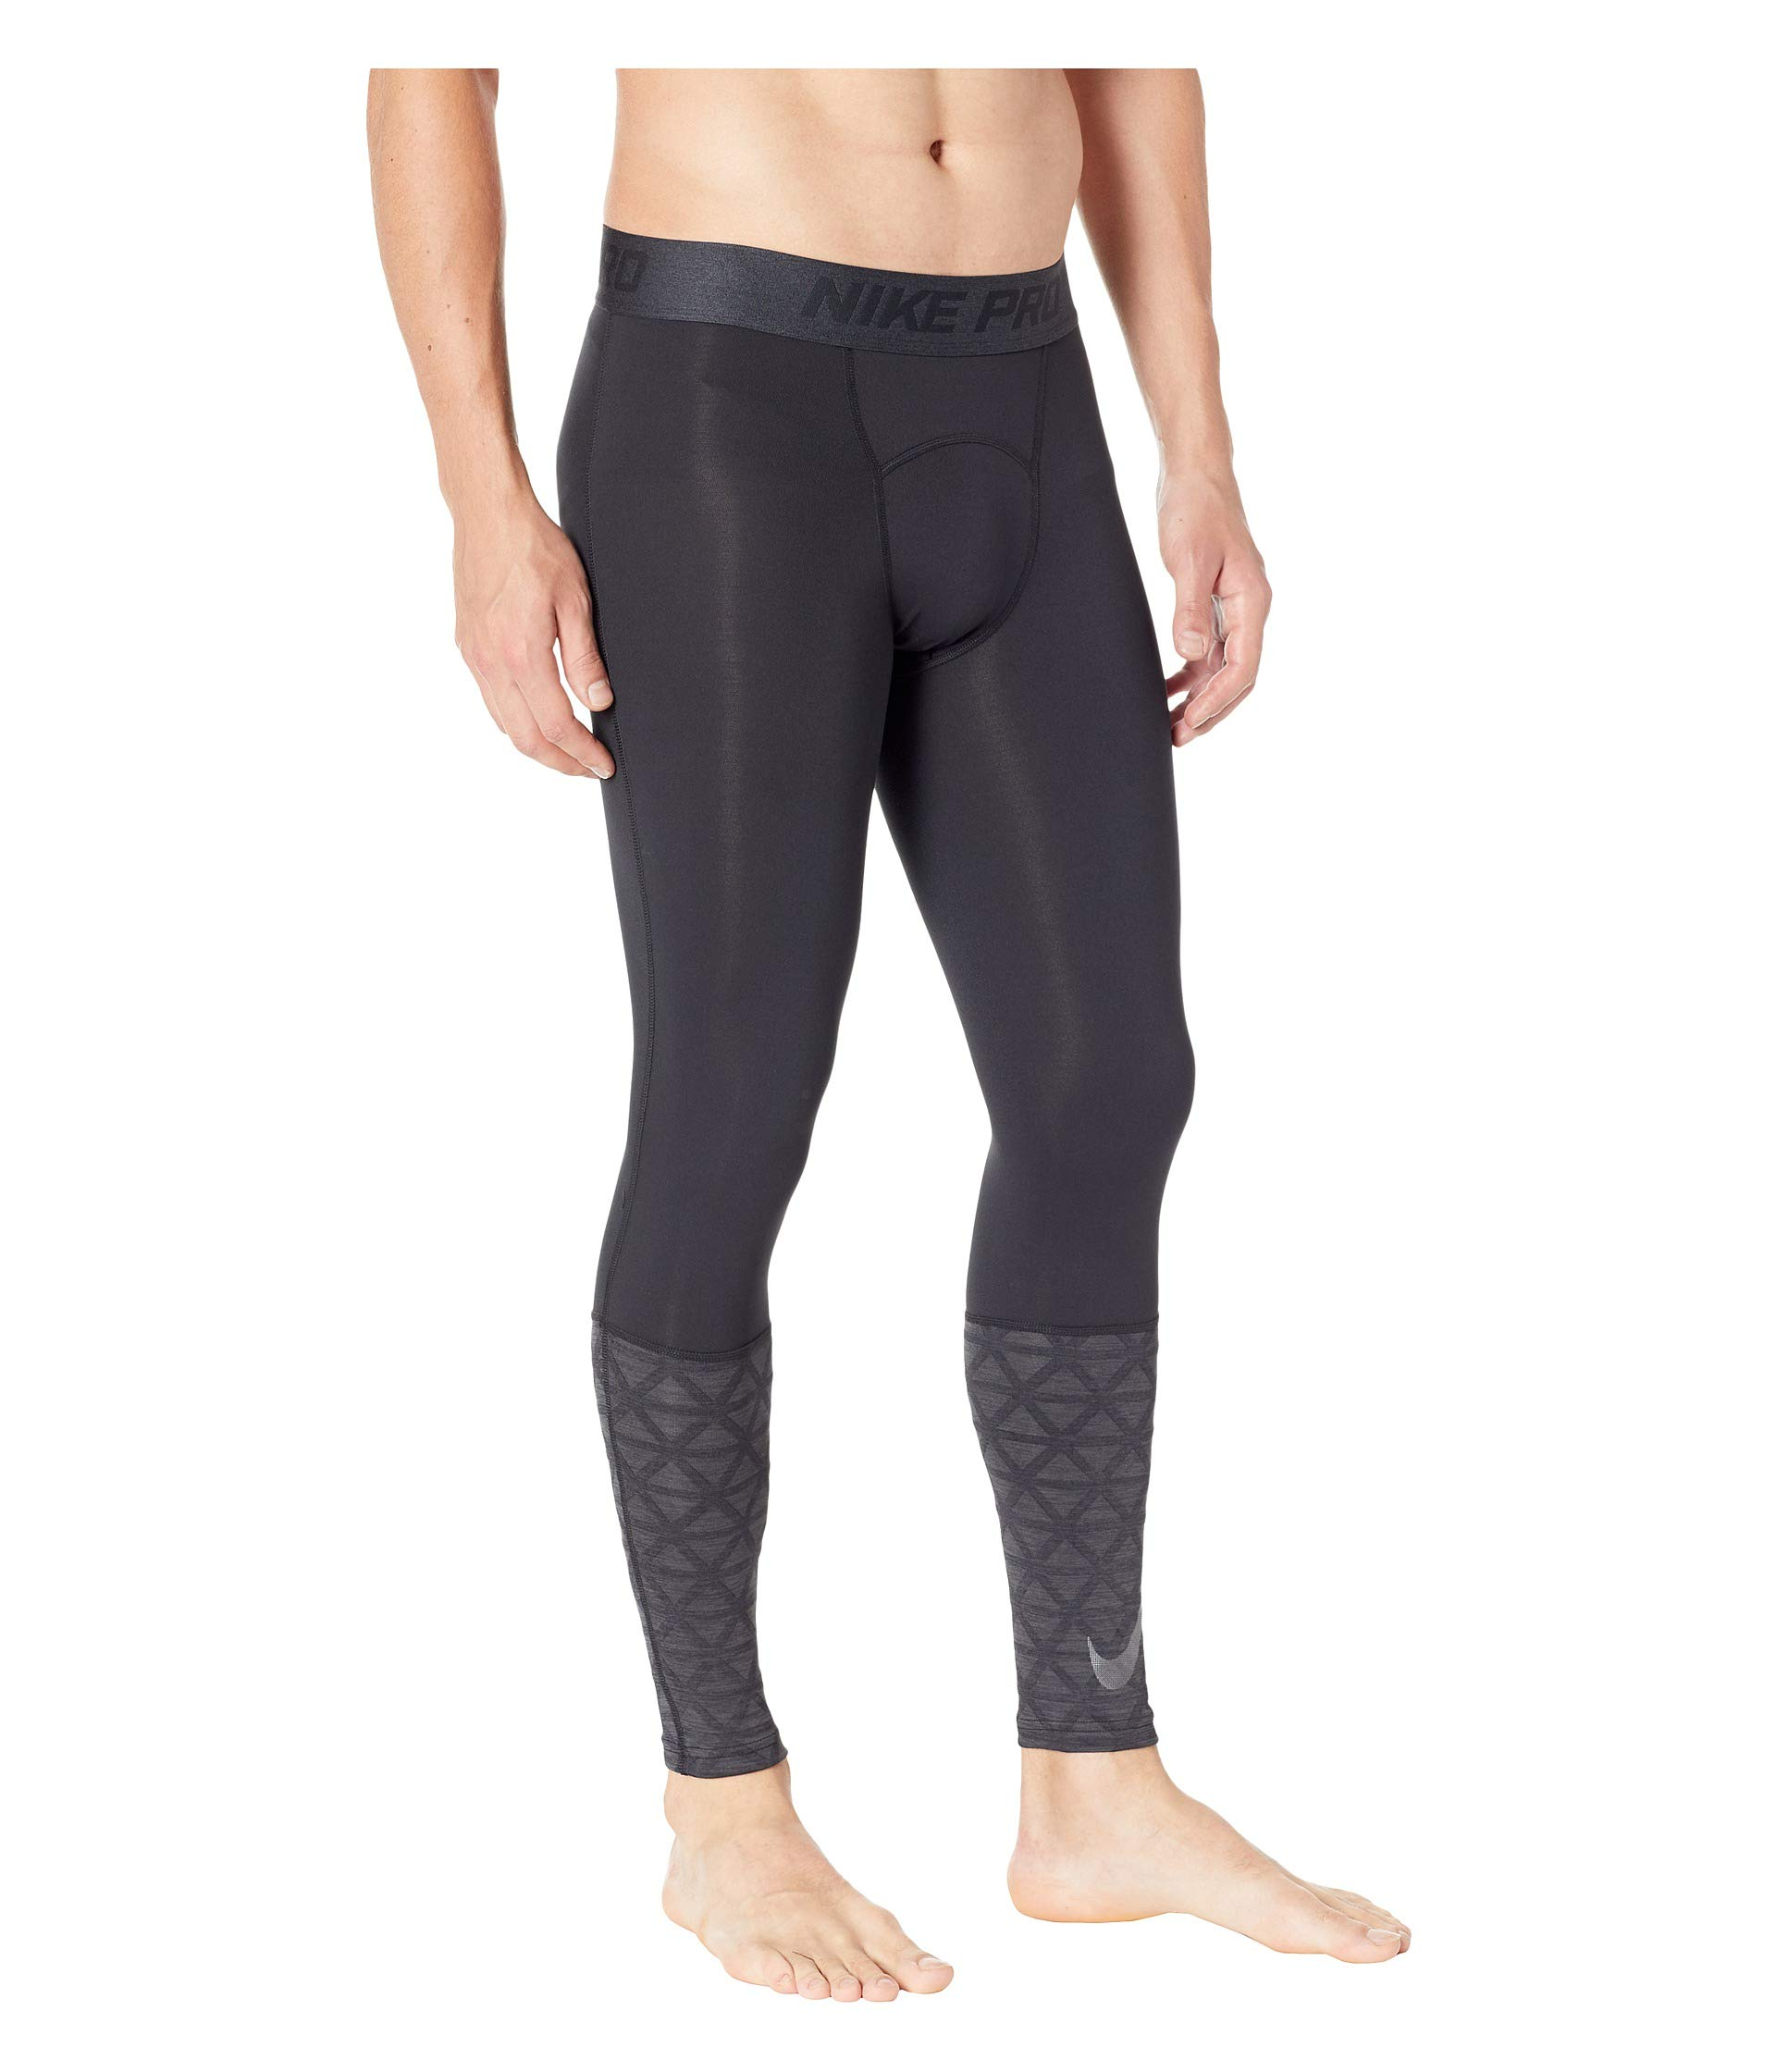 Pro Utility Therma Nike anthracite Black Tights black dqx0A